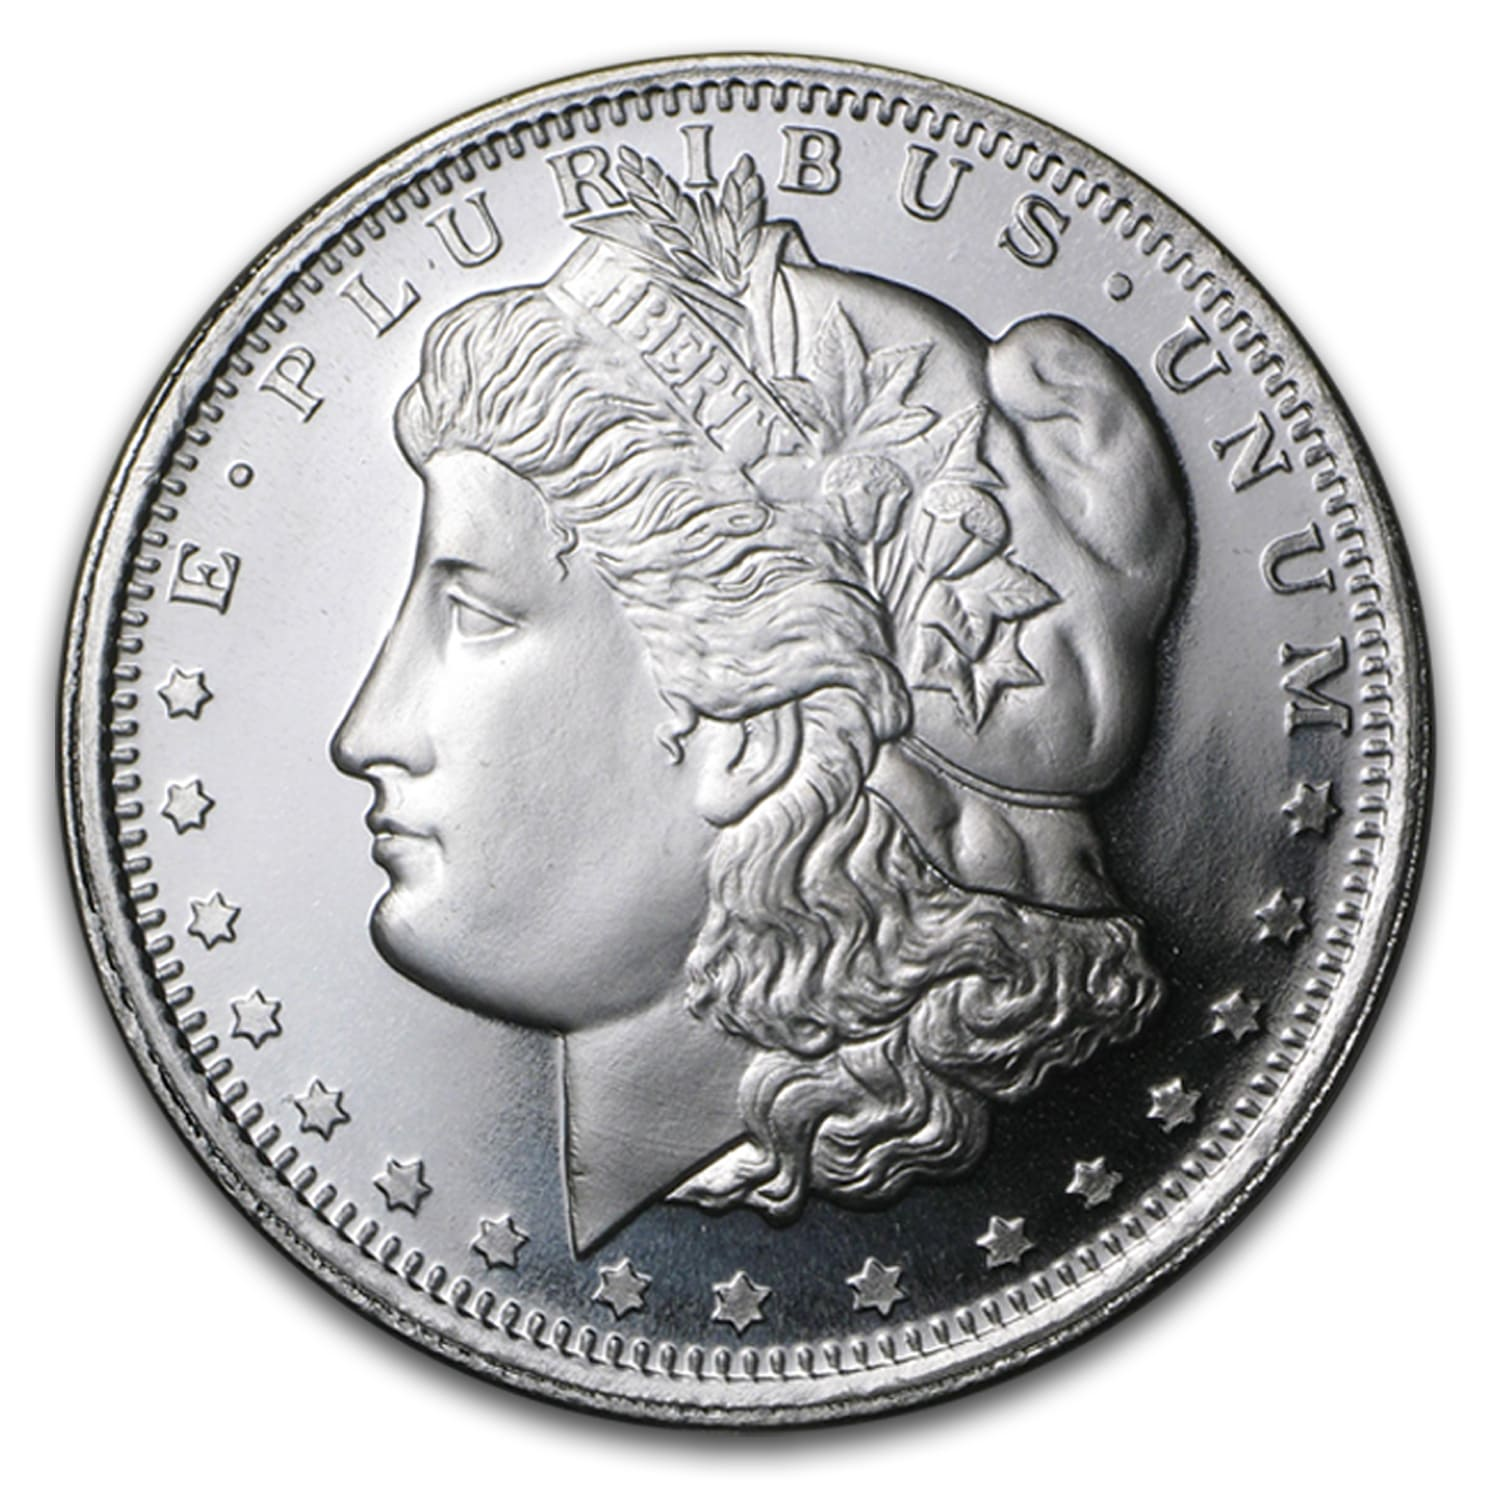 1 oz Silver Round - Morgan Dollar Design (Pre-Sale 8/12/15)